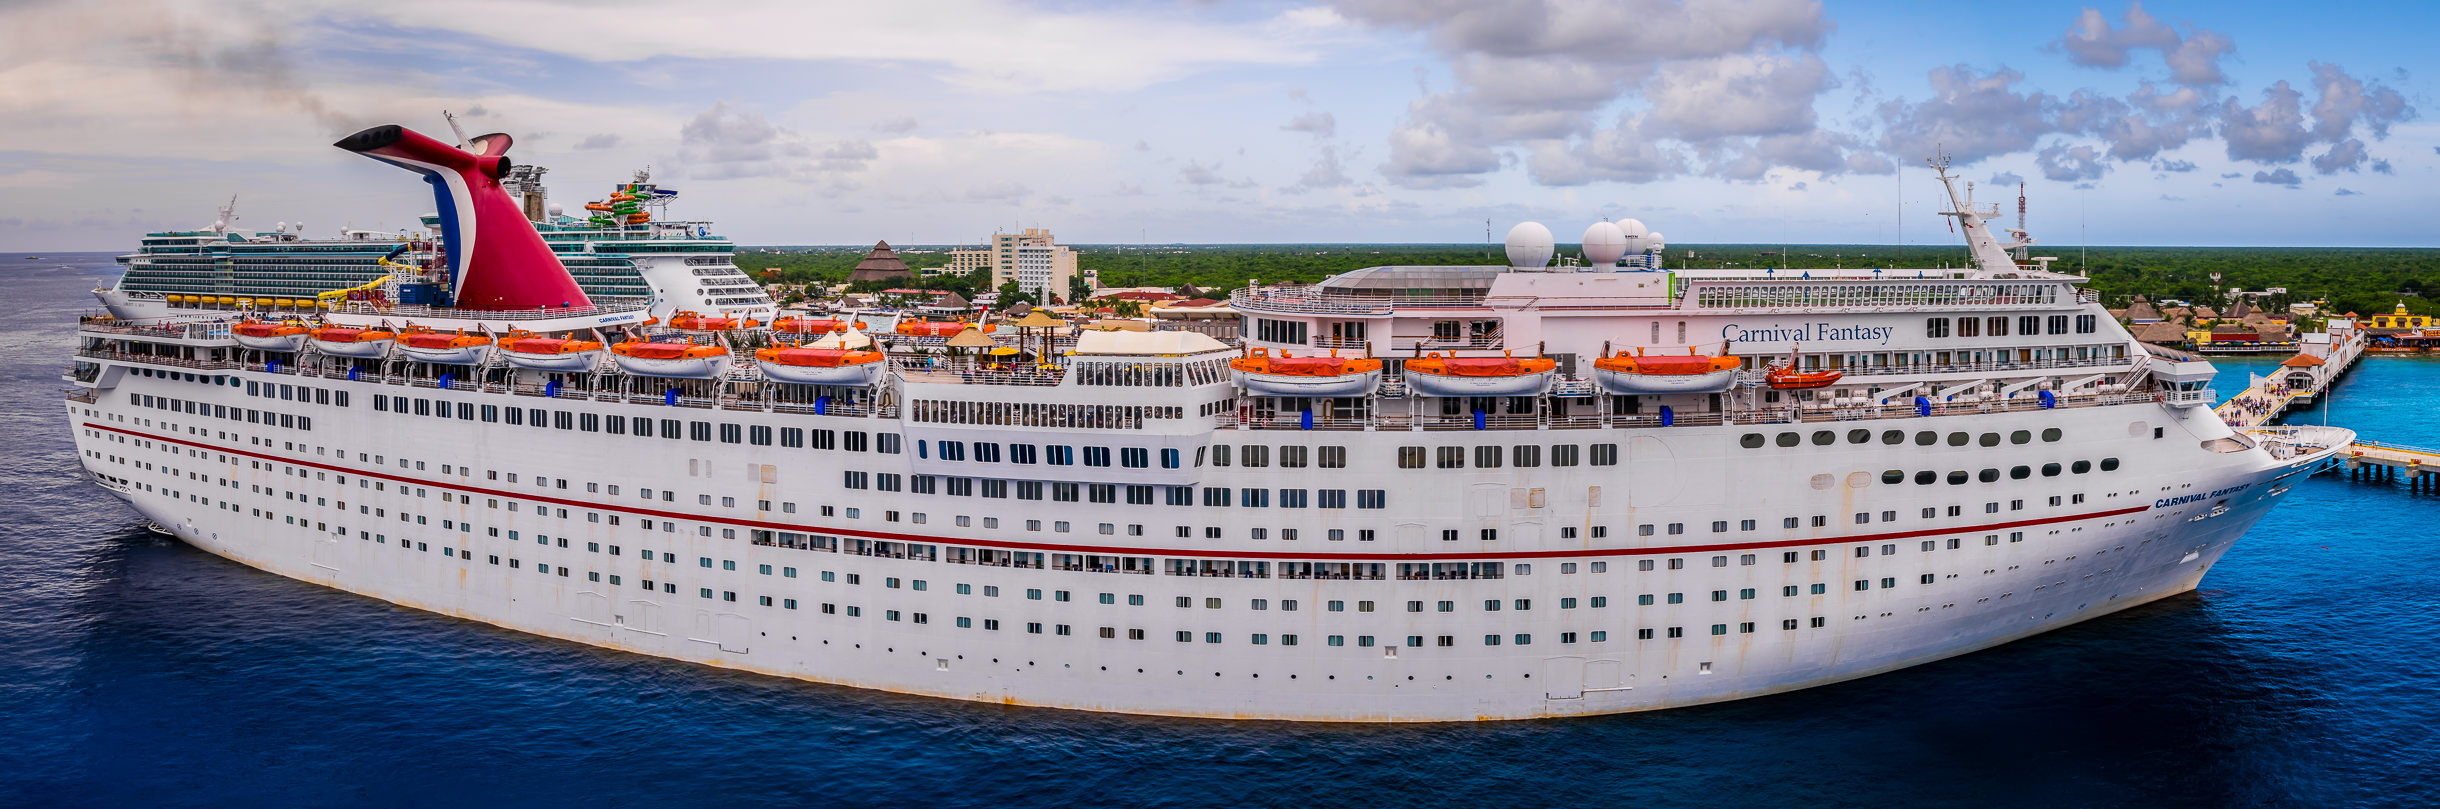 A panoramic view of the cruise ship Carnival Fantasy, docked in Cozumel, Mexico. (Click the photo to view a larger version)